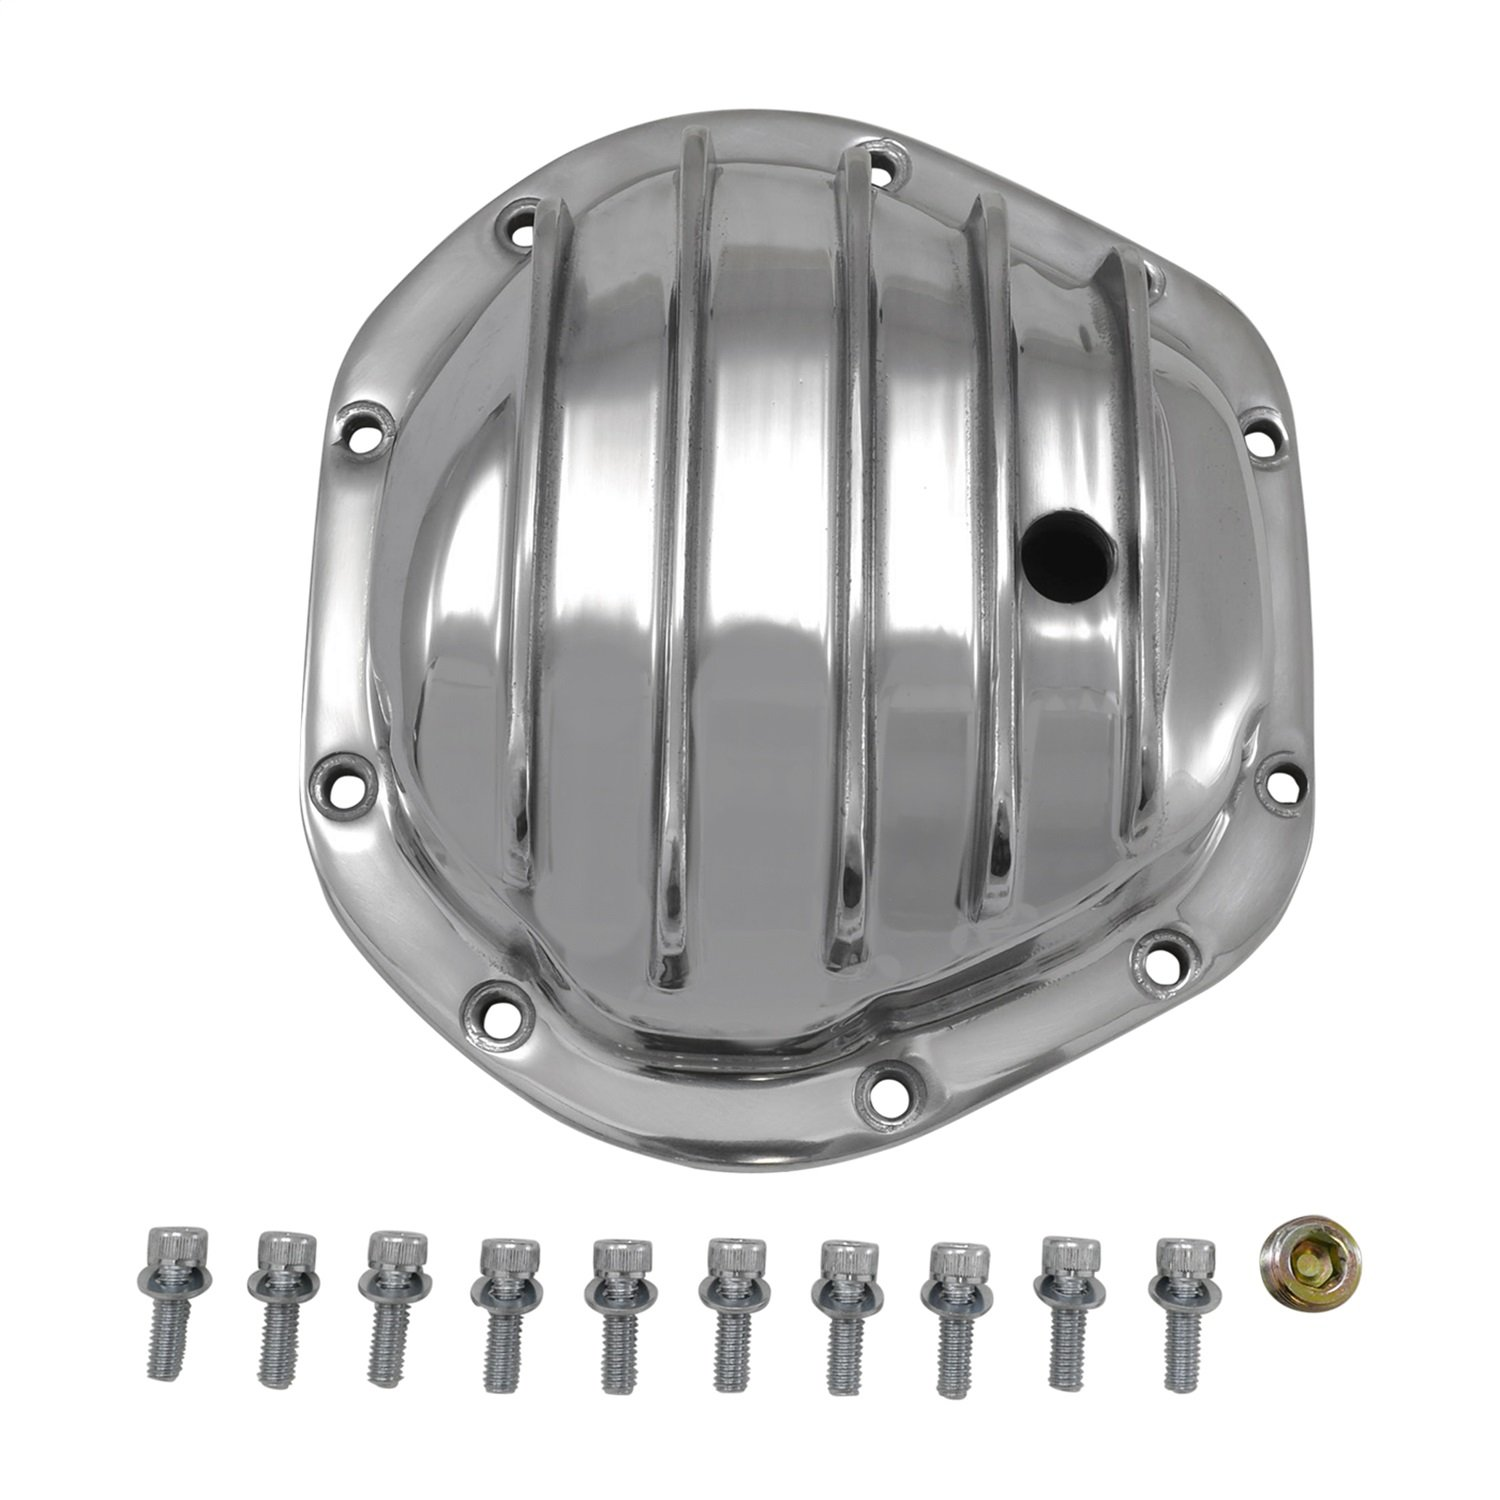 Yukon (YP C2-D44-STD) Polished Aluminum Replacement Cover for Dana 44 Differential